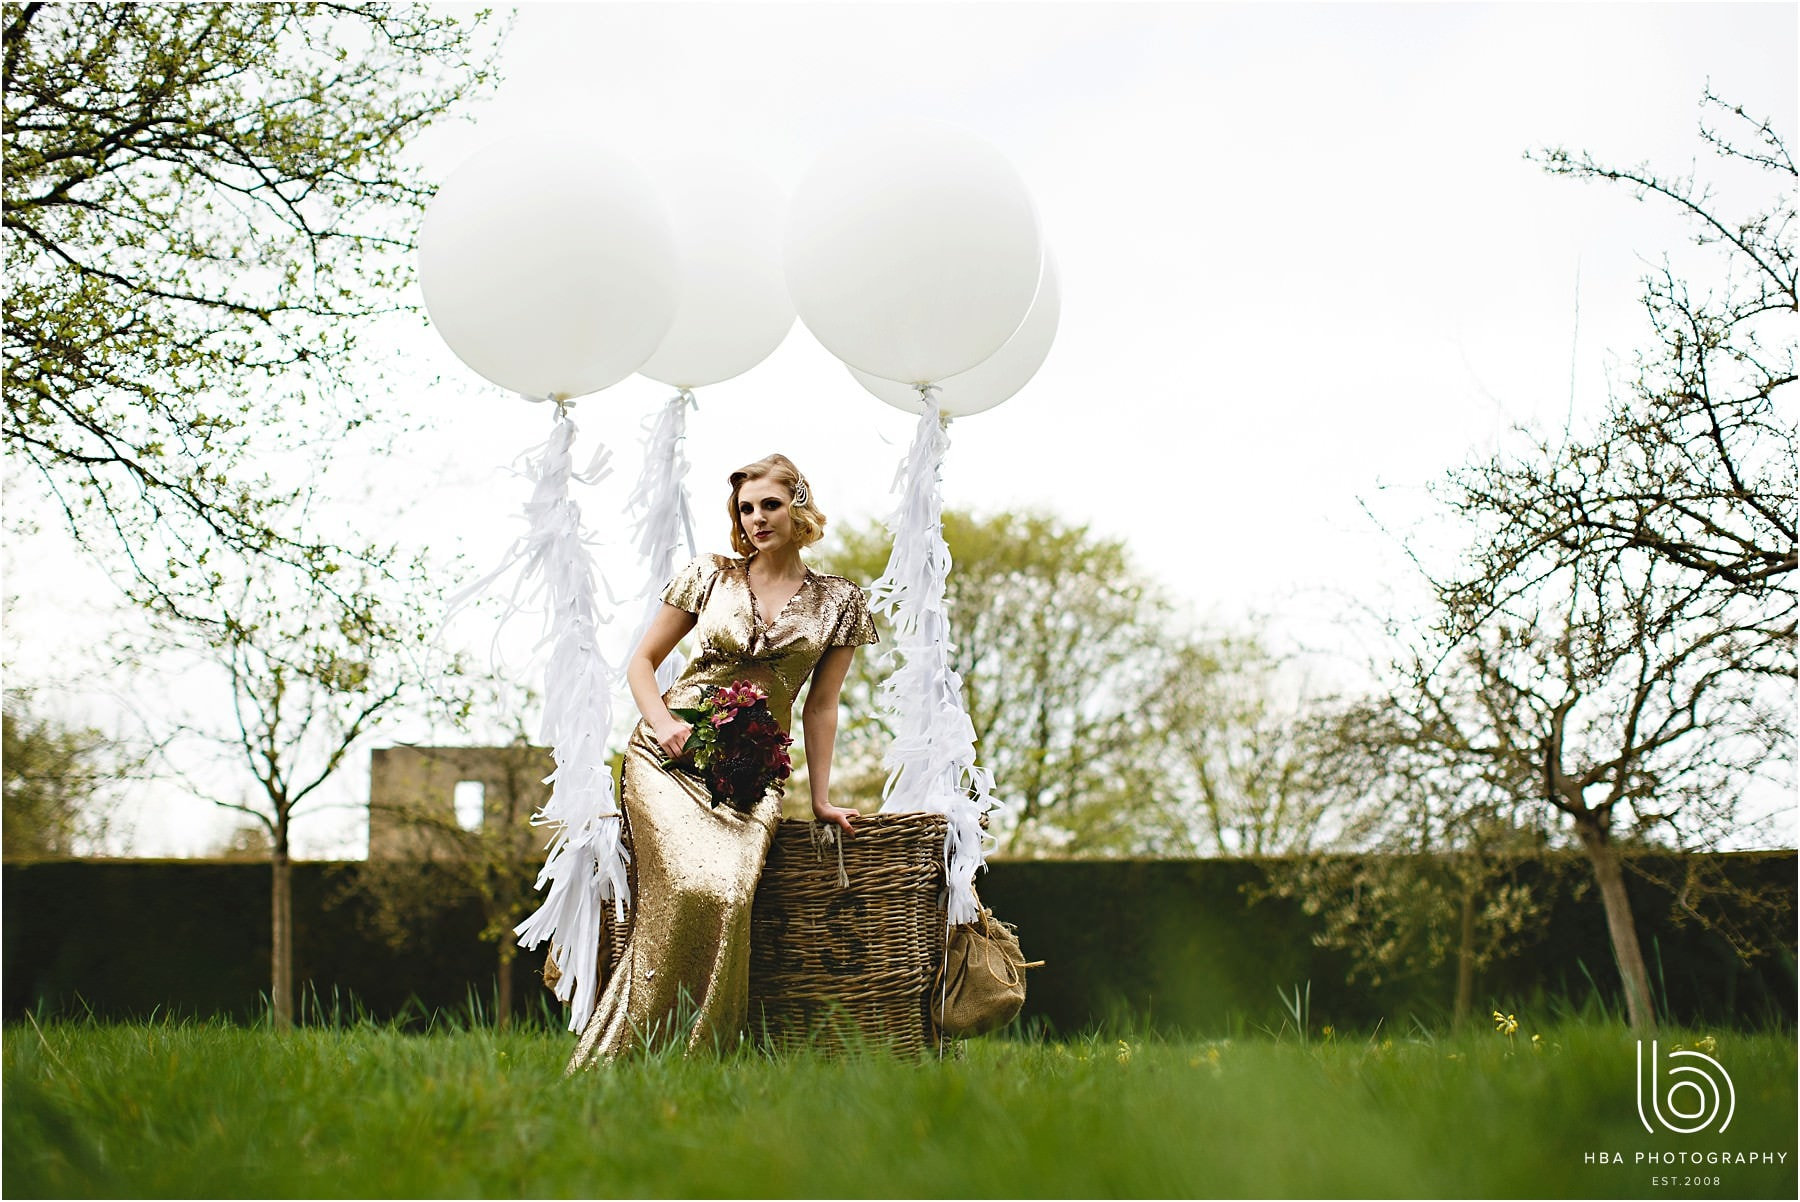 the bride in a balloon basket in the gardens on her wedding day at Hardwick Hall